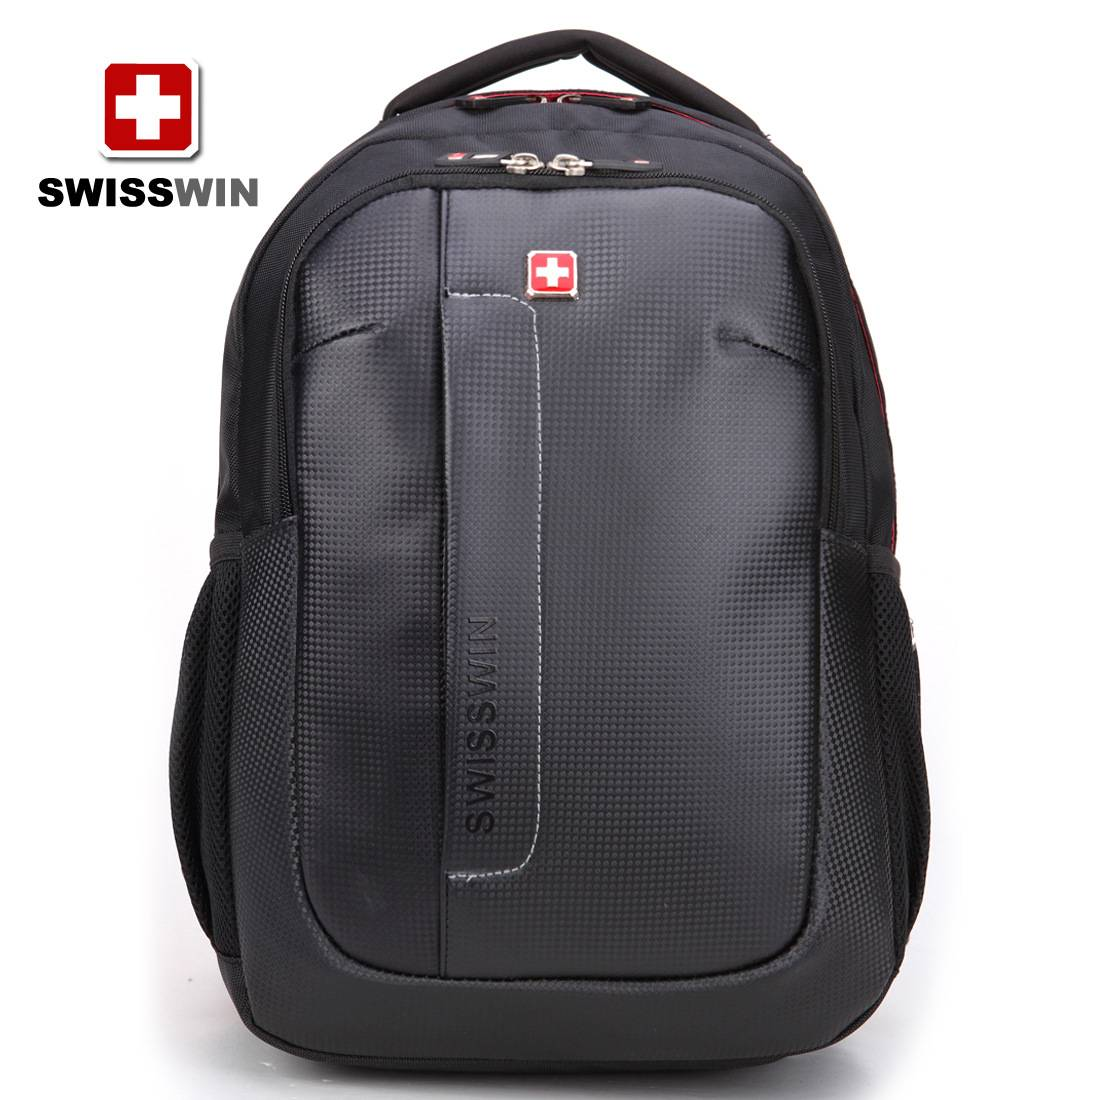 SWISSWIN Army Knife Computer Backpack fashion business casual men backpack travel backpack